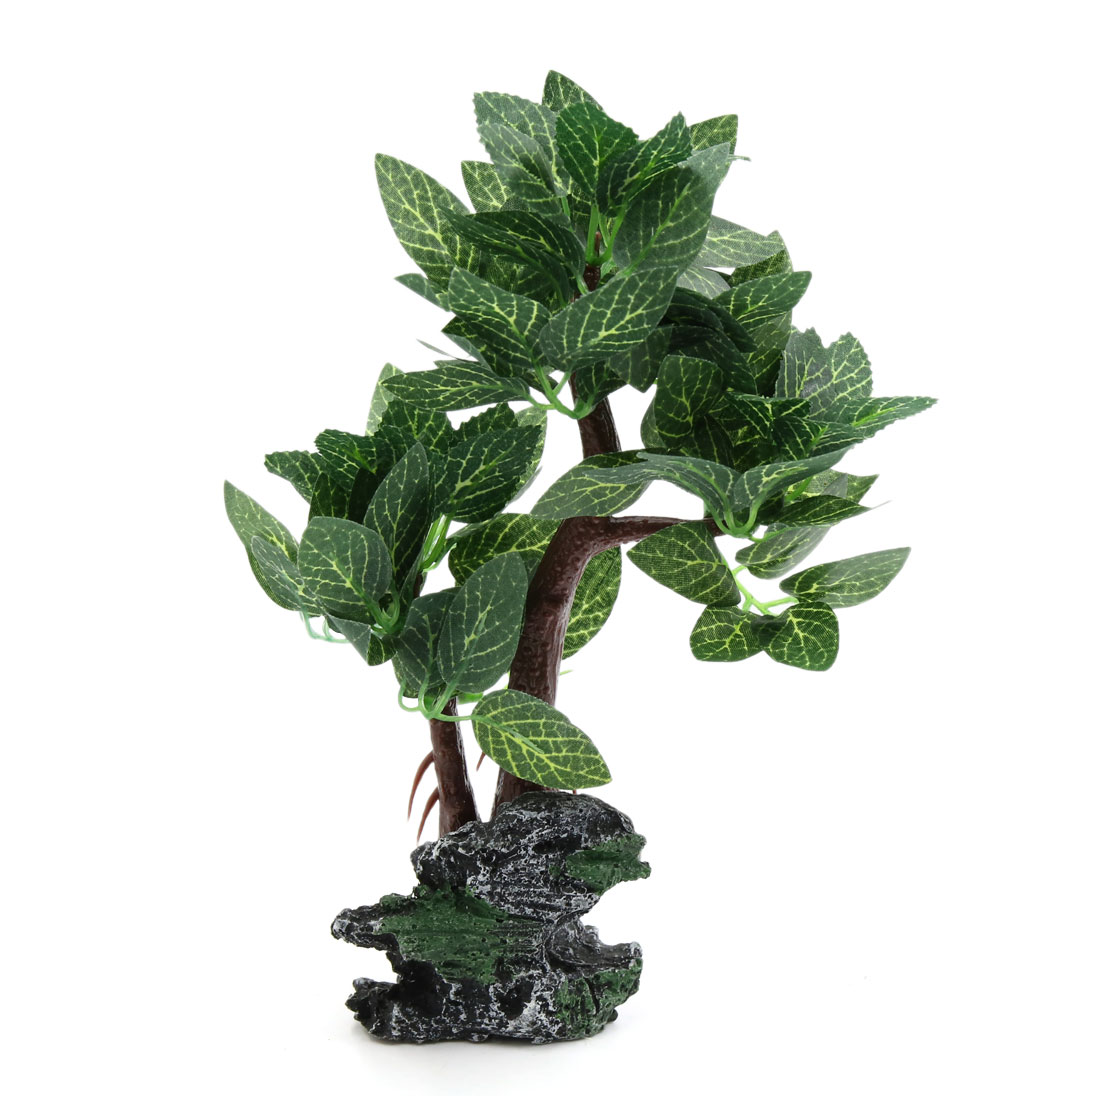 Aquarium Betta Fish Tank Aquascape Decorative Lifelike Tree Green w/ Resin Base